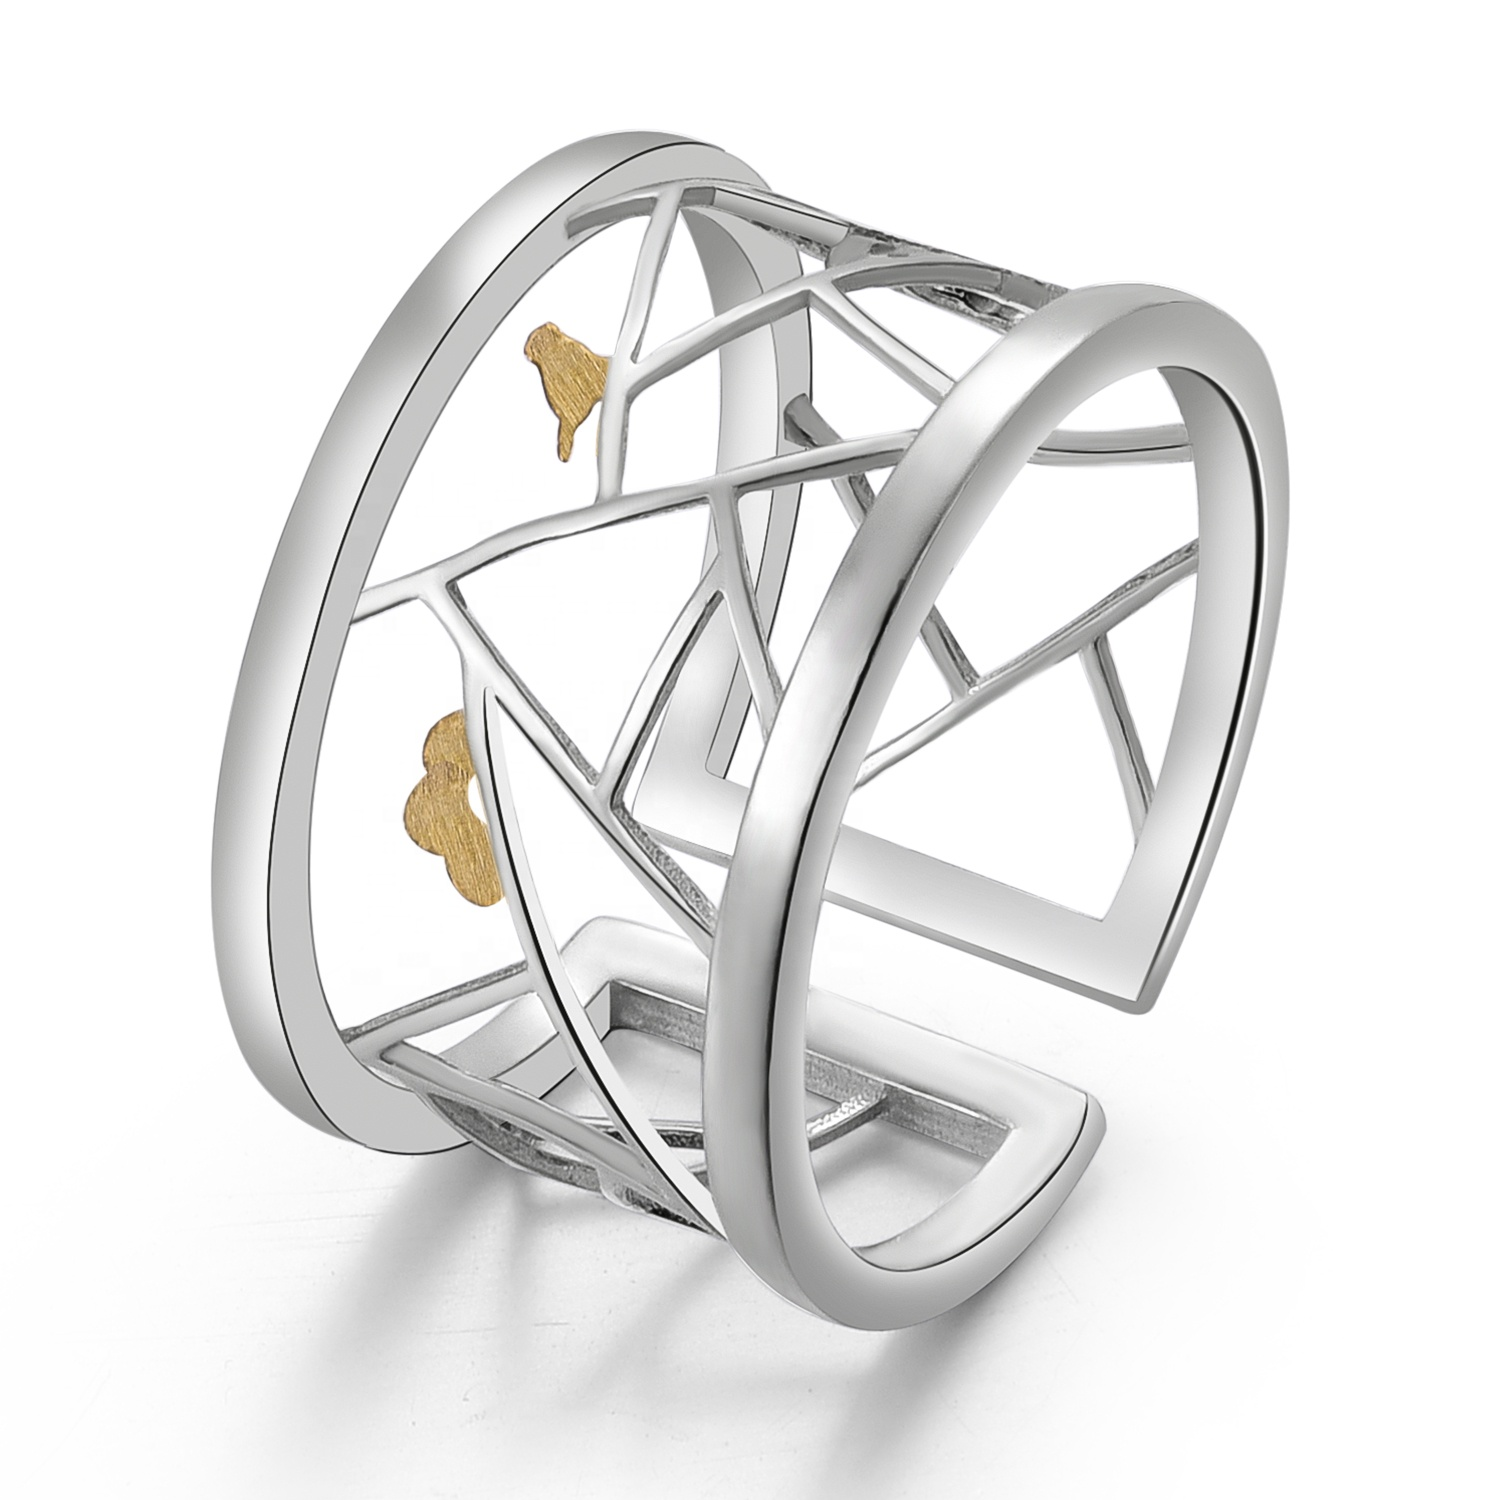 Creative Paper-cut sterling silver rings <strong>jewelry</strong>